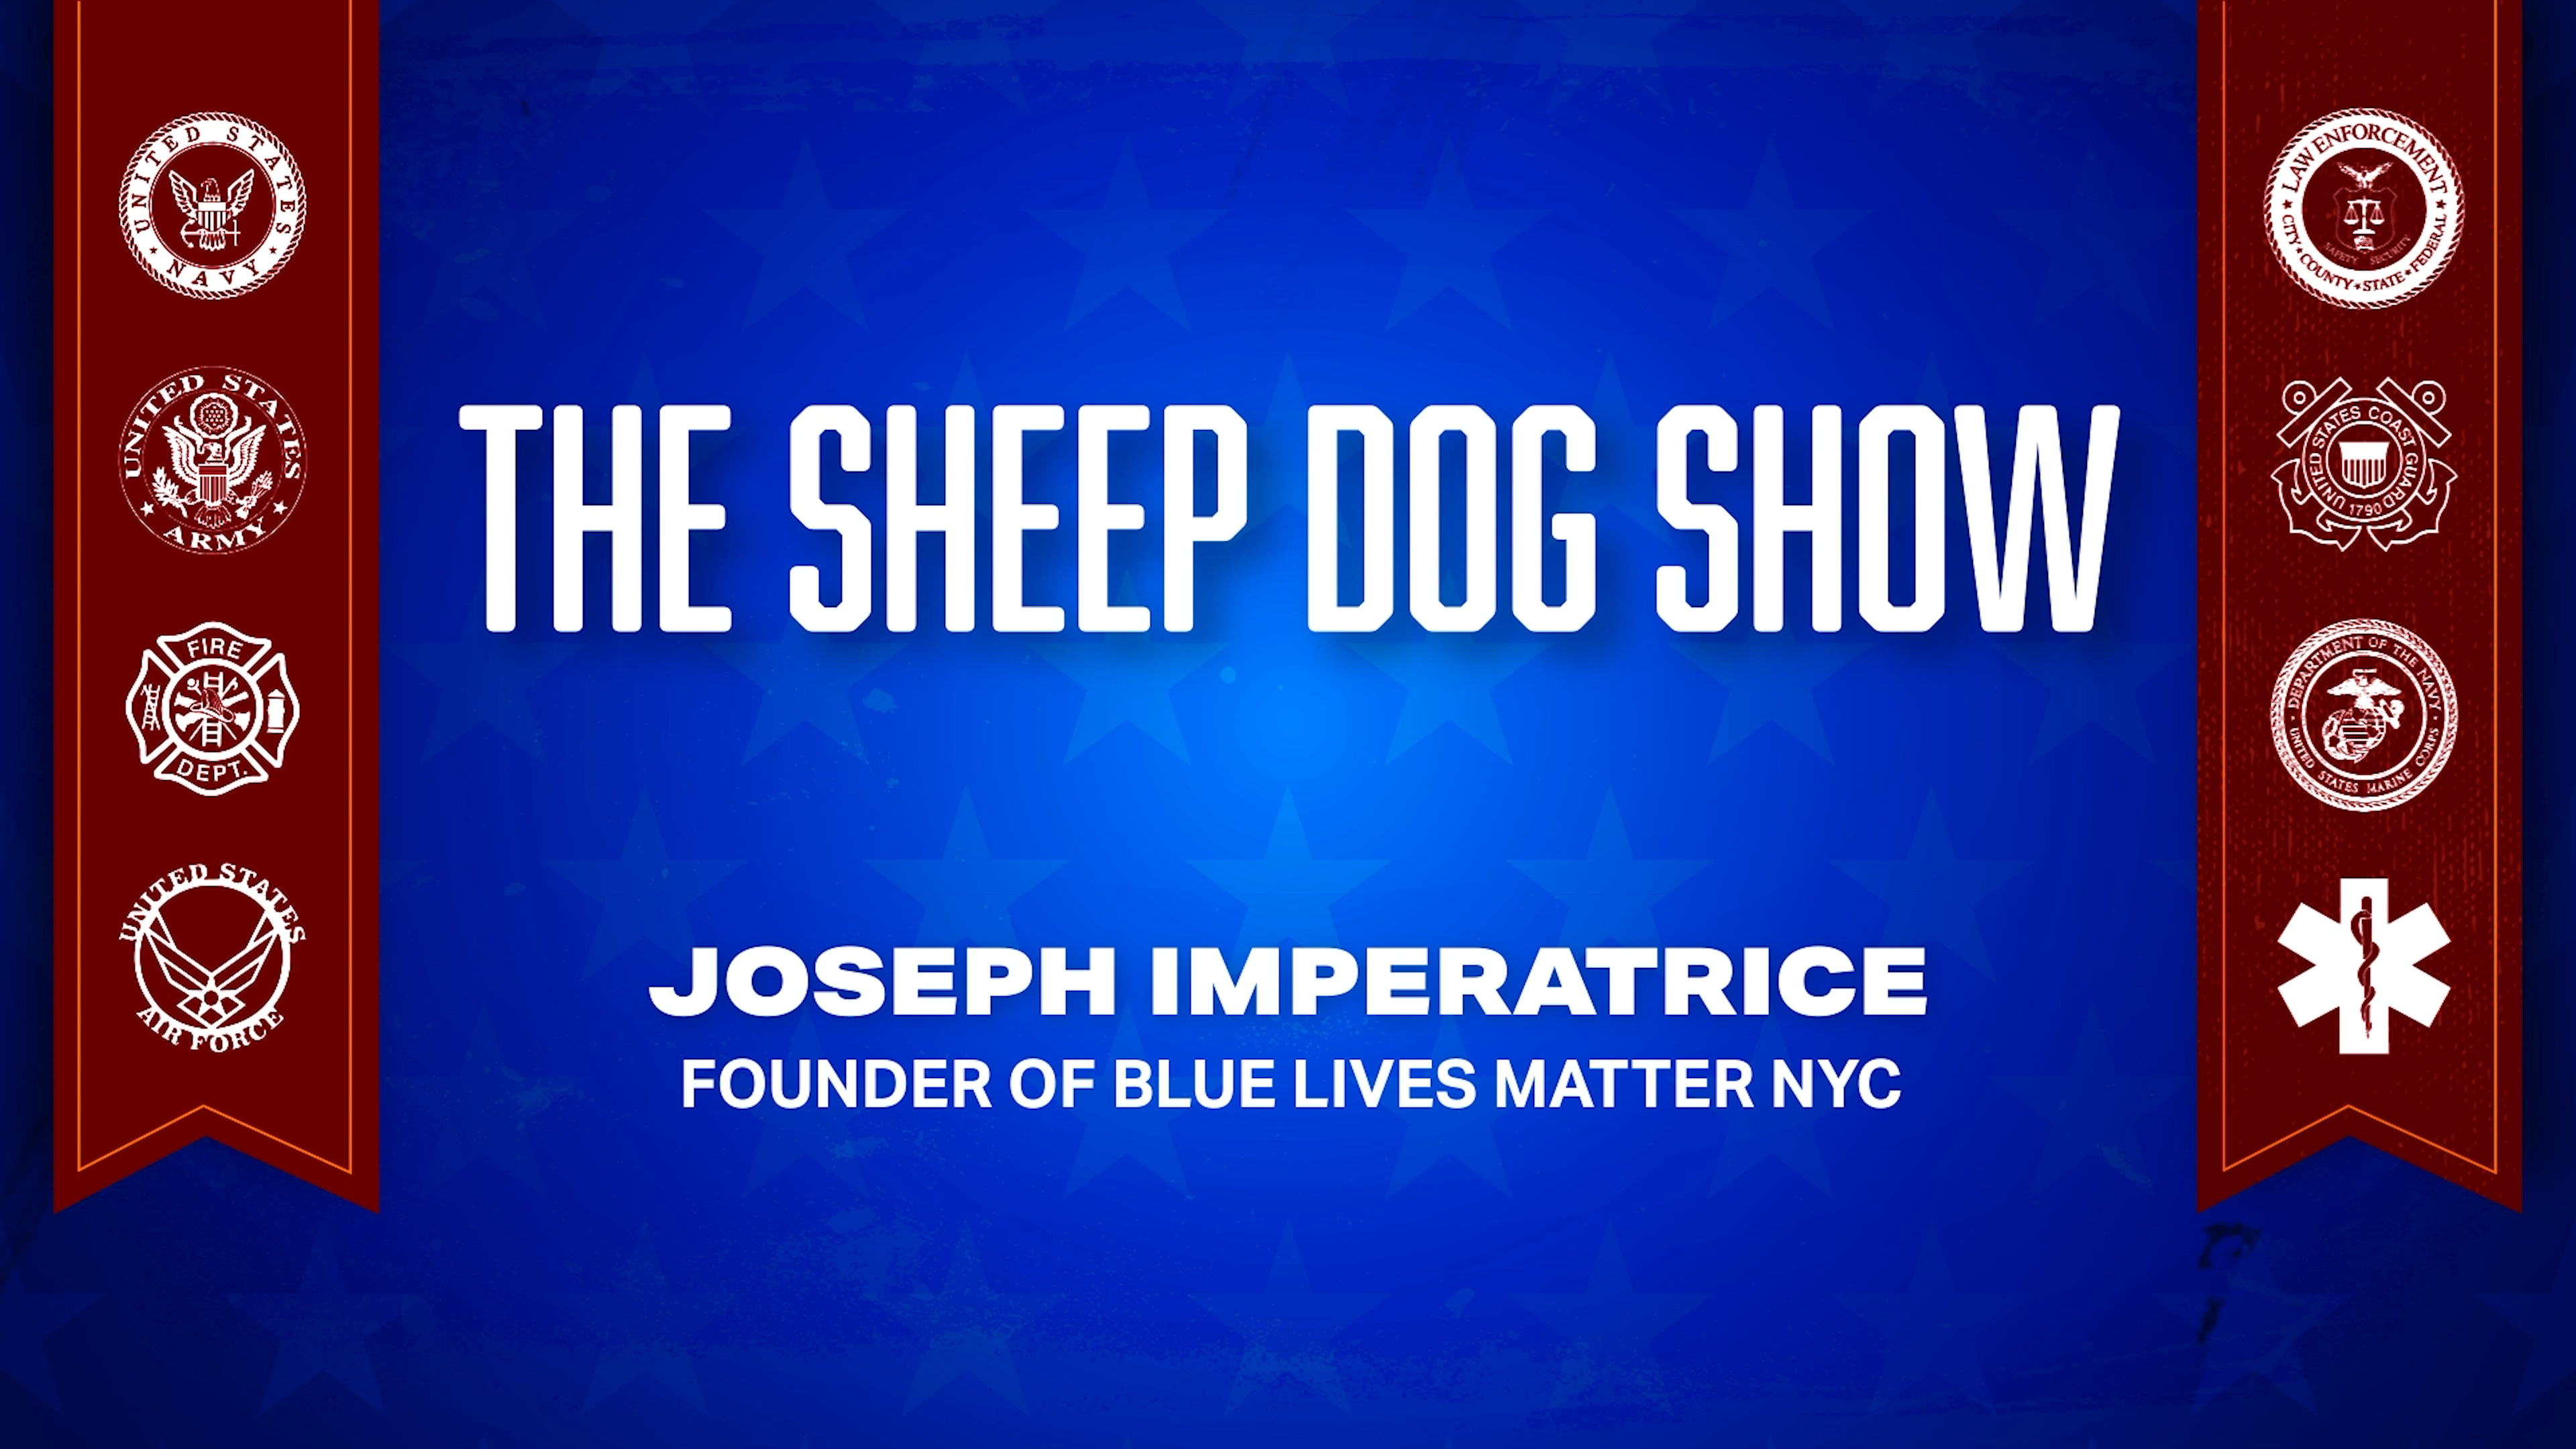 The Sheep Dog Show